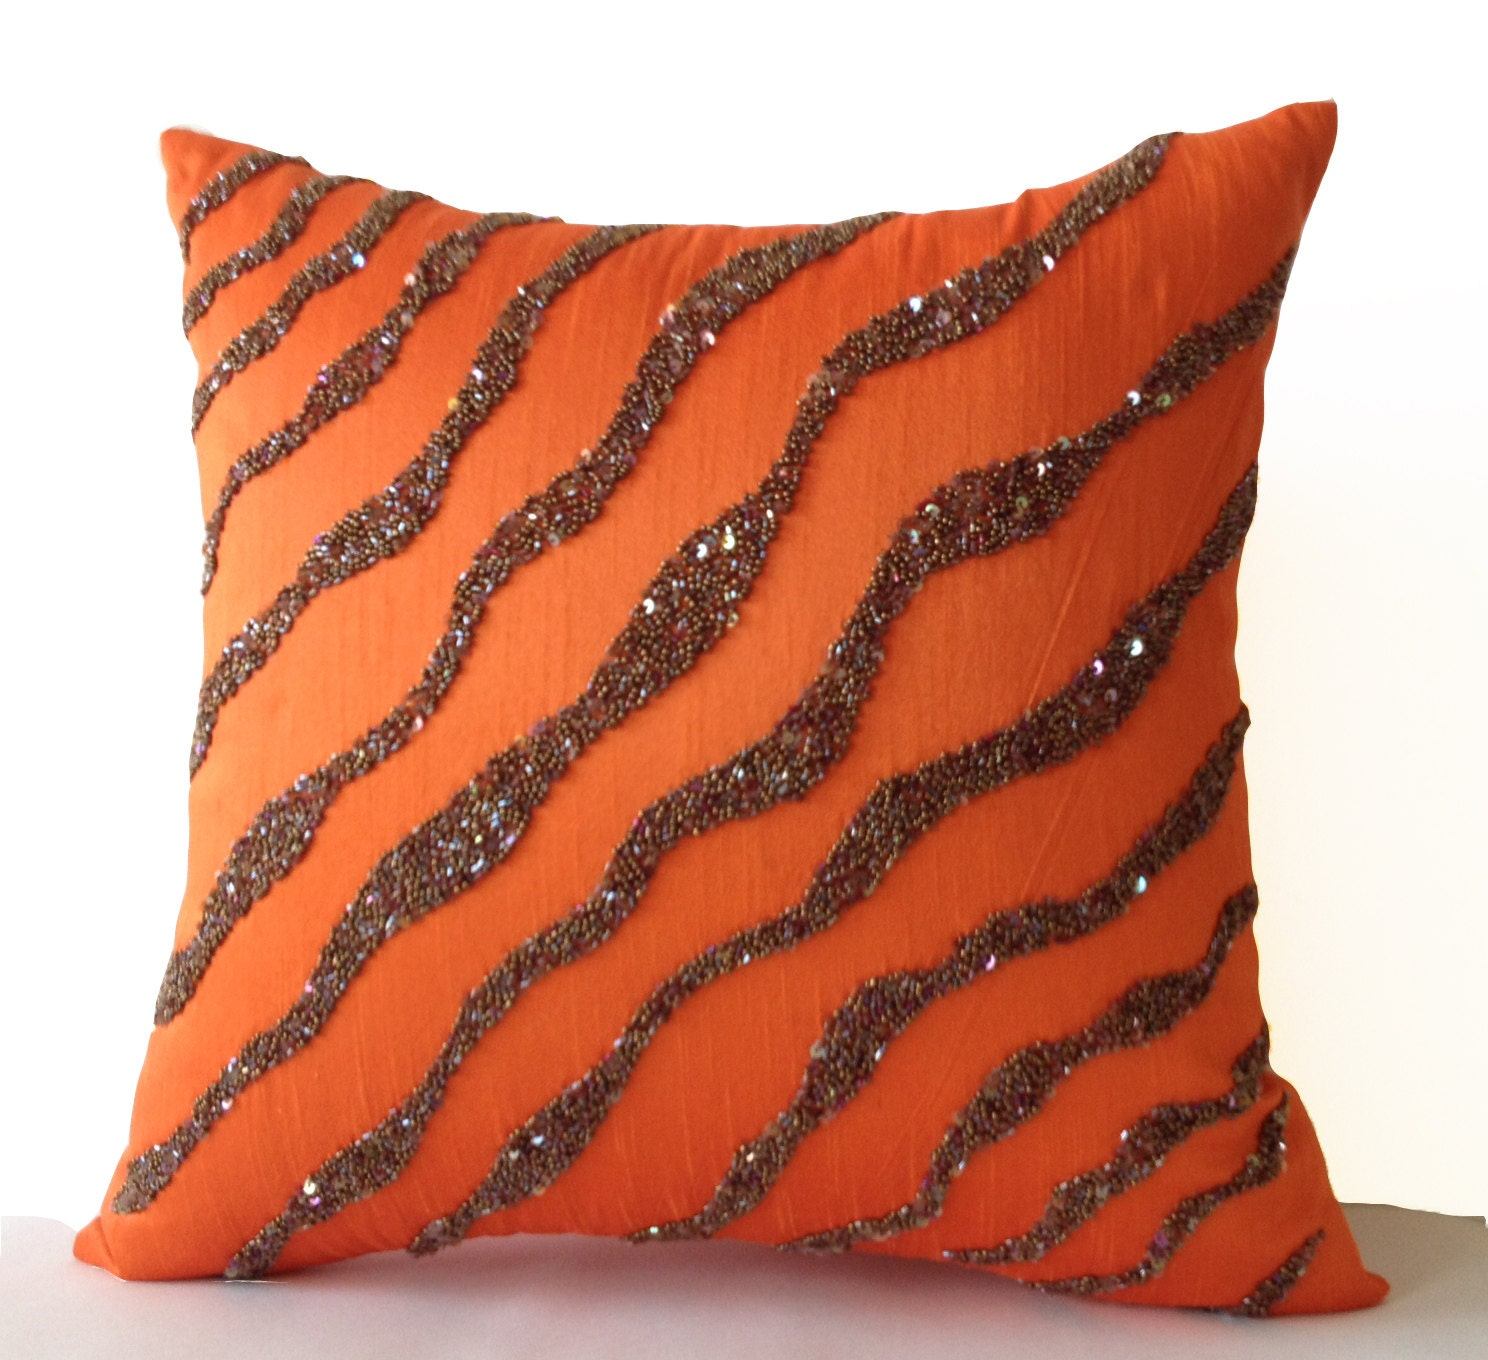 Orange Decorative Pillows Couch : Decorative Throw Pillows Orange Brown Sea Waves on Art Silk